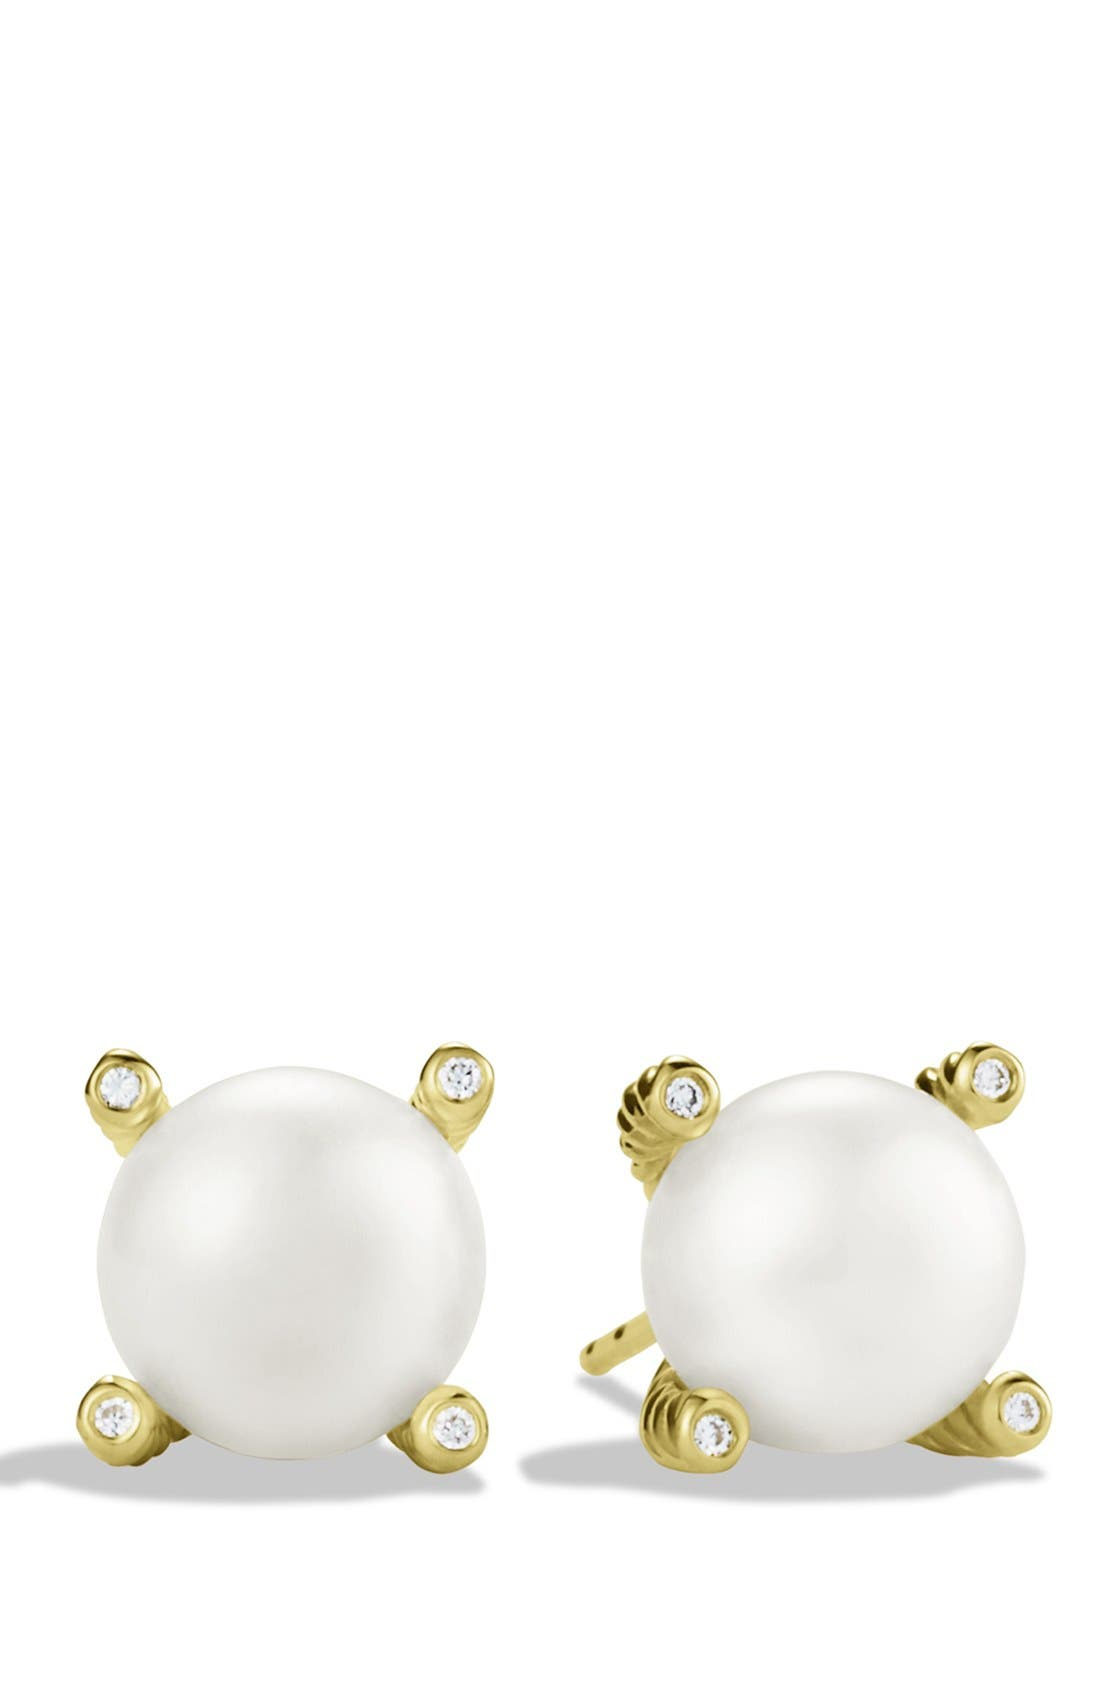 DAVID YURMAN Pearl Earrings with Diamonds in Gold